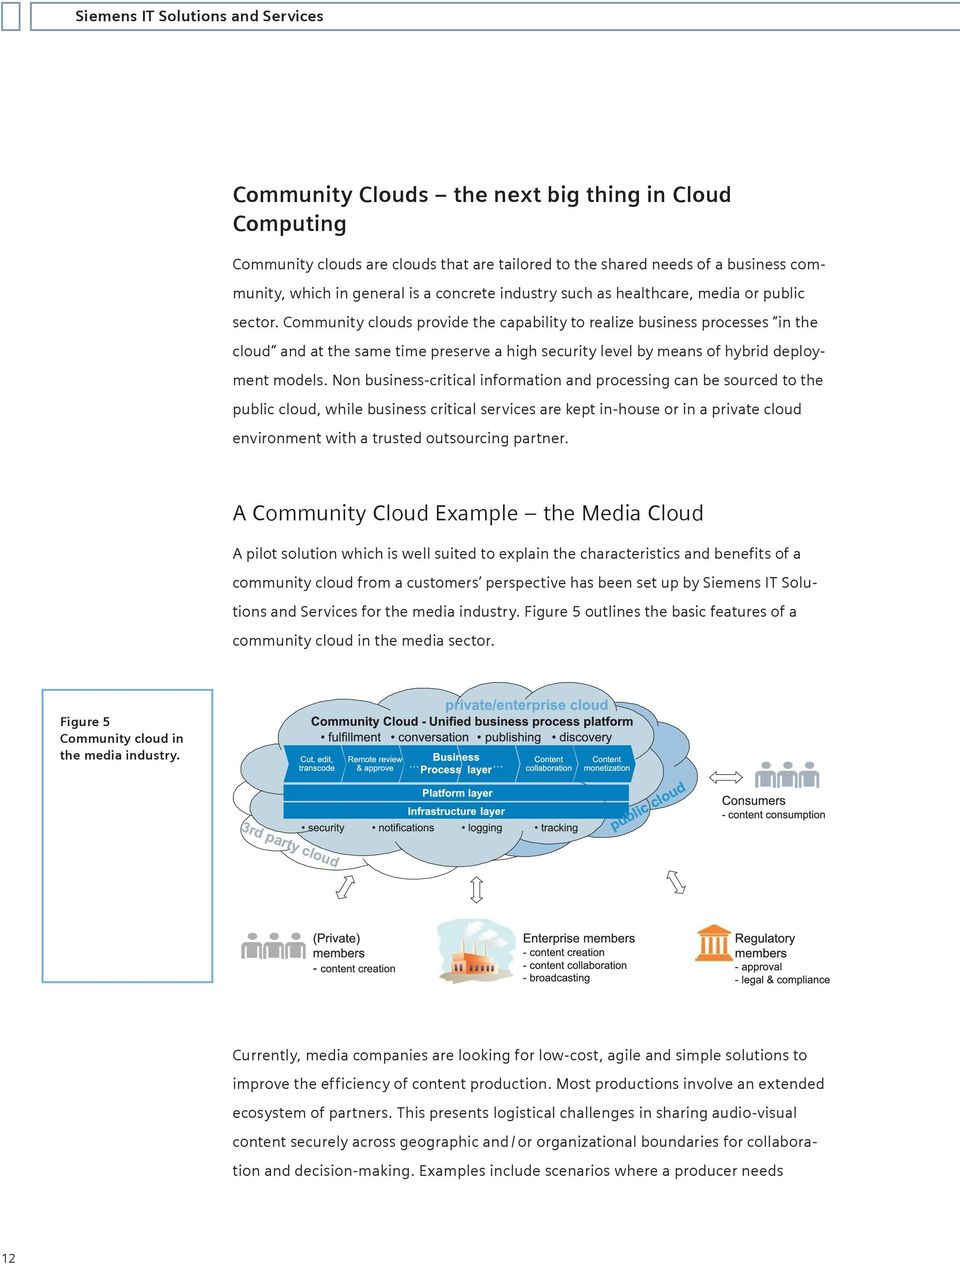 Community clouds provide the capability to realize business processes in the cloud and at the same time preserve a high security level by means of hybrid deployment models.